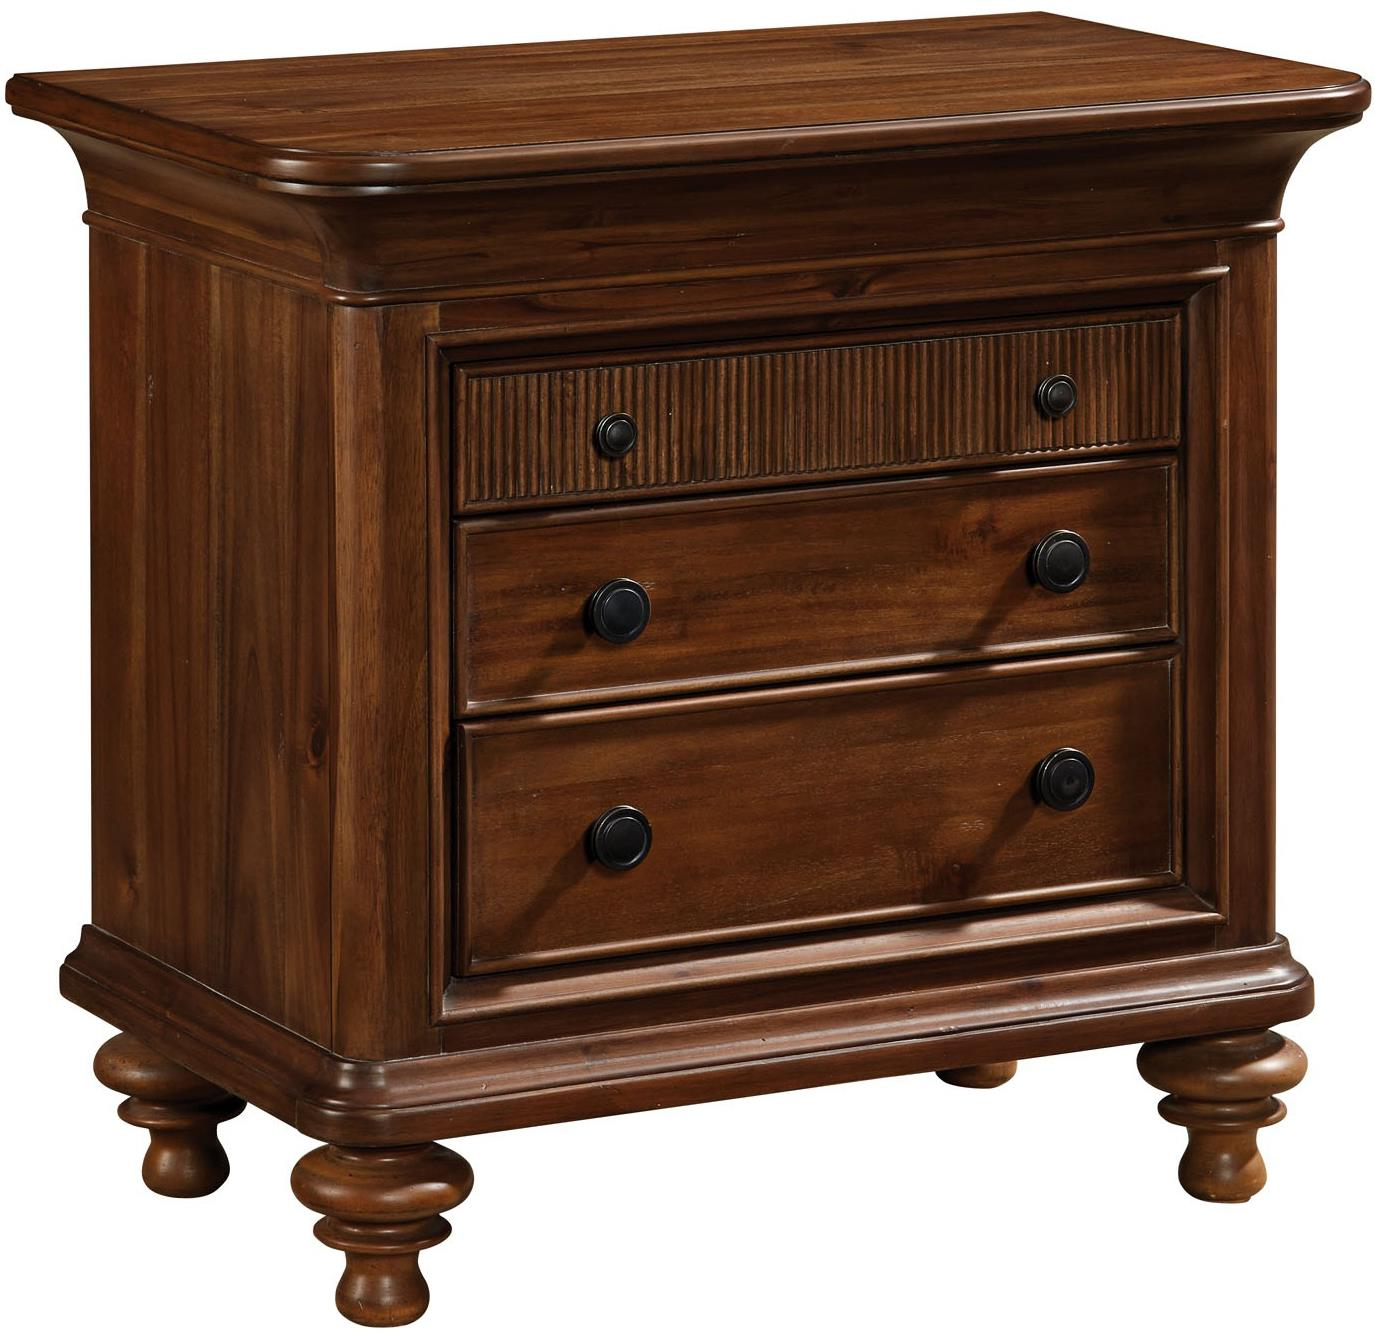 Broyhill Furniture Cascade Night Stand - Item Number: 4940-293